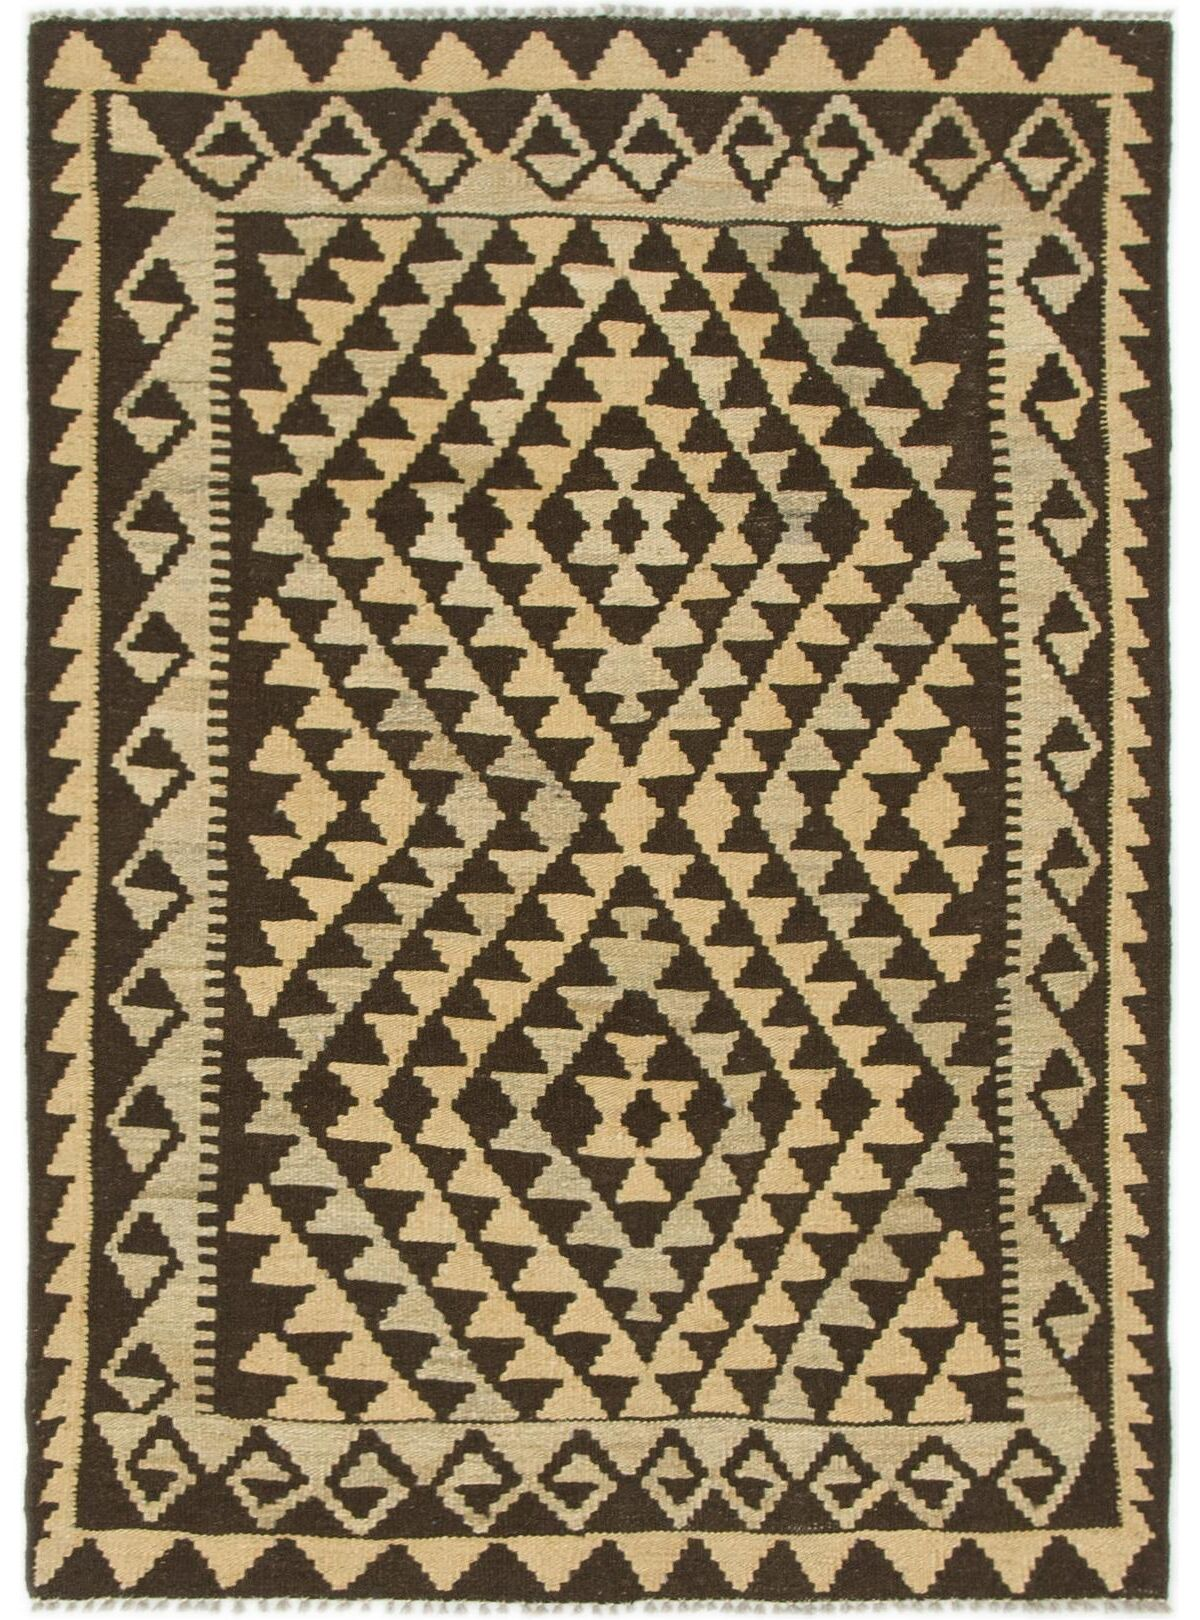 One-of-a-Kind Lorain Hand-Knotted Wool 3' x 4'1